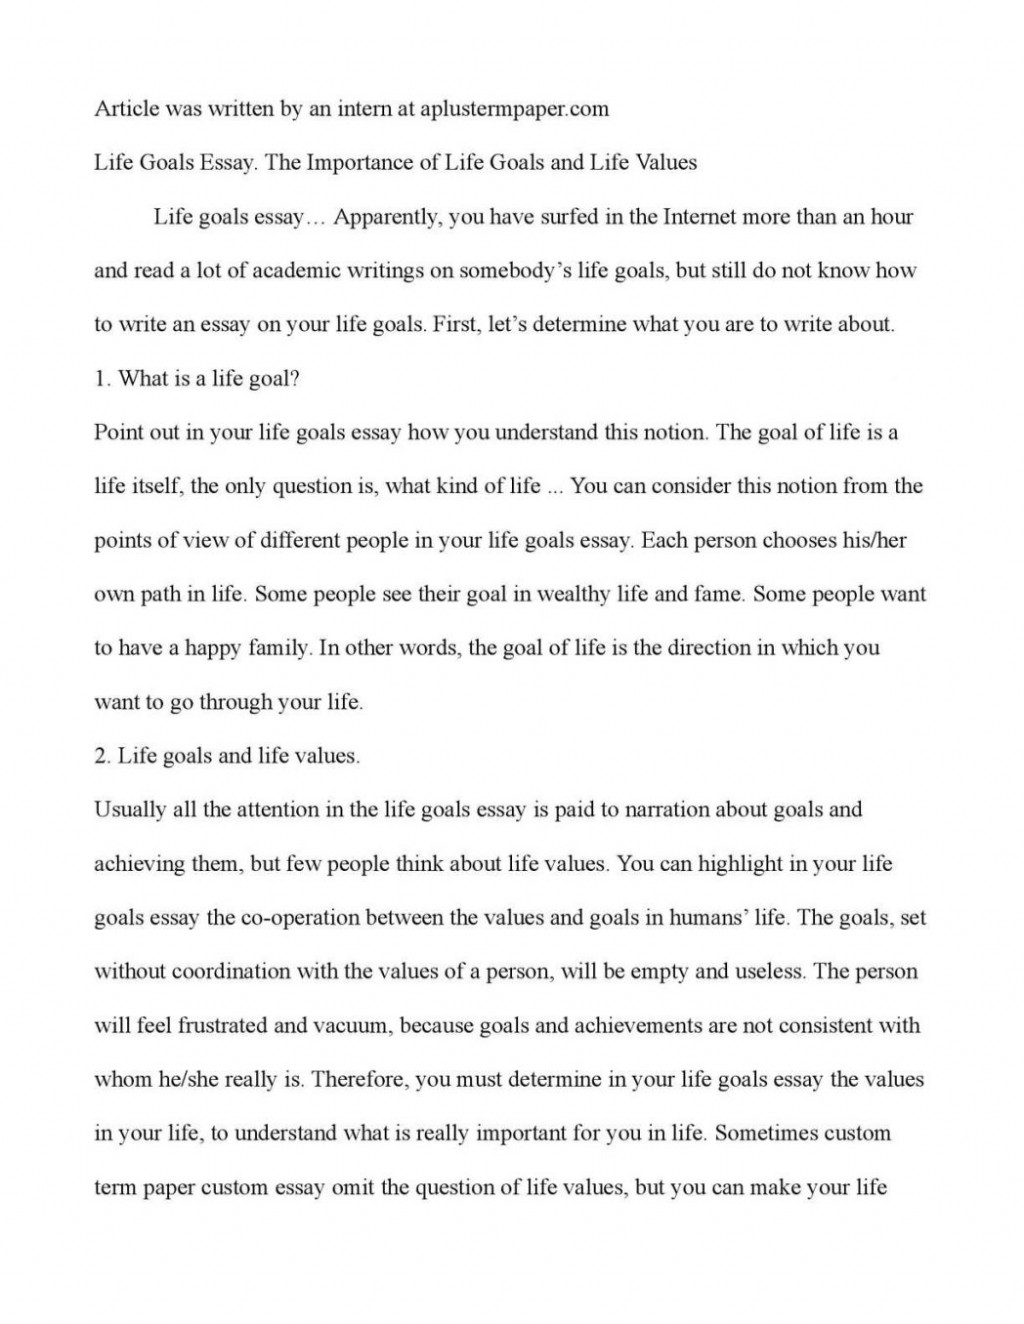 009 Essay About Goals On Academic Educational And Career Exampls Pdf My What Are Your 1048x1356 Awesome In High School After Life Large